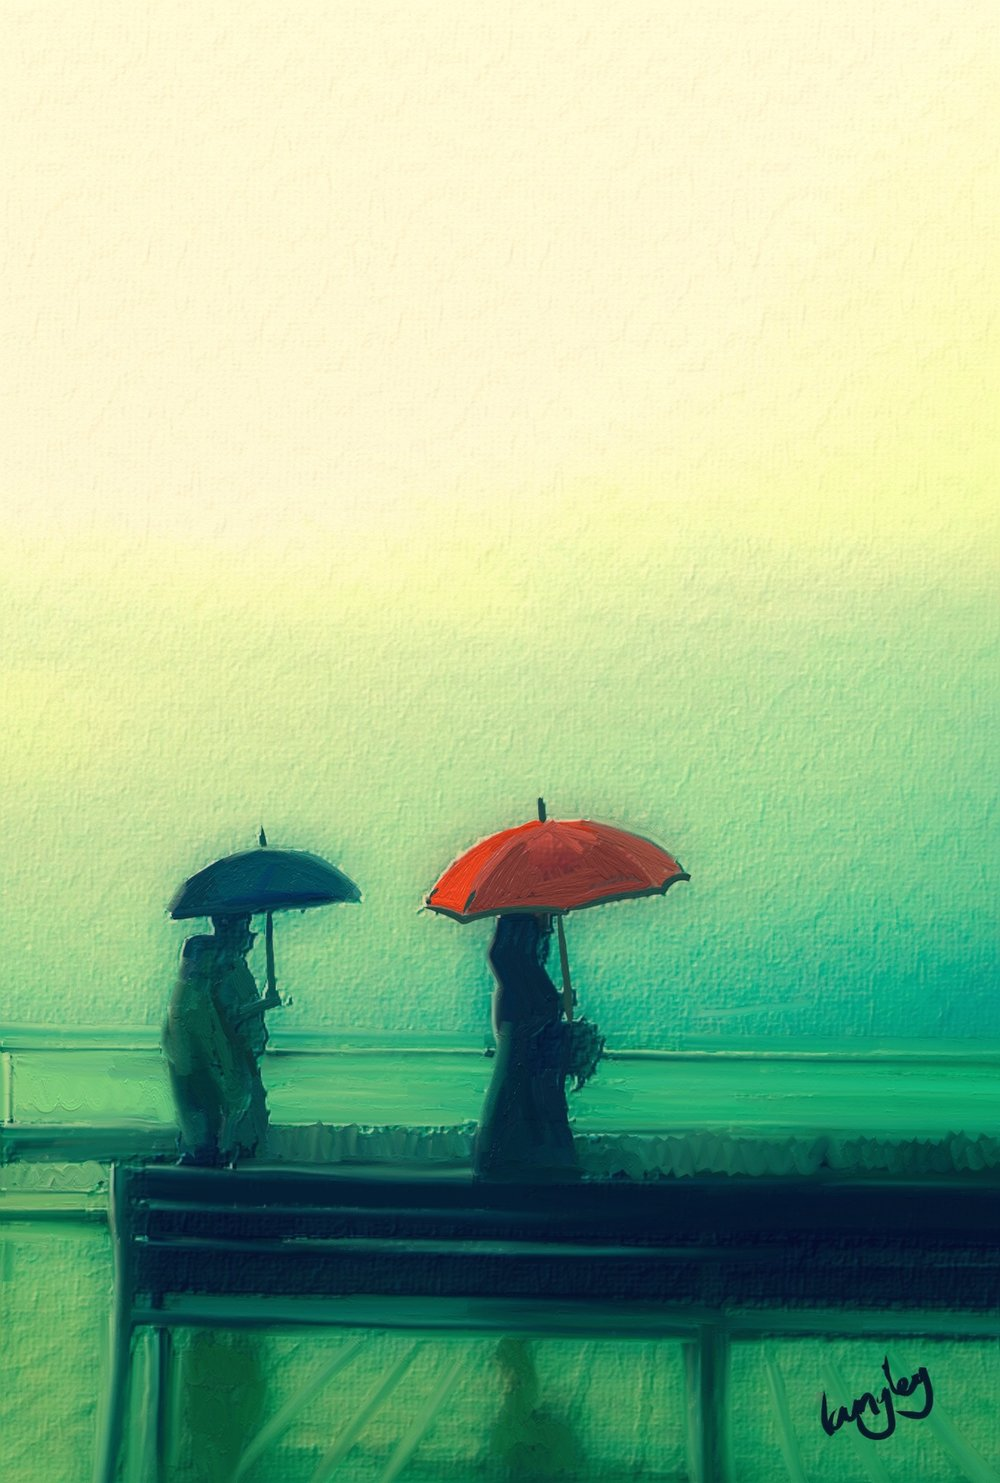 Two Umbrellas. Master canvas print. 23x16%22 Chosen as event poster for New York Exhibition.jpg